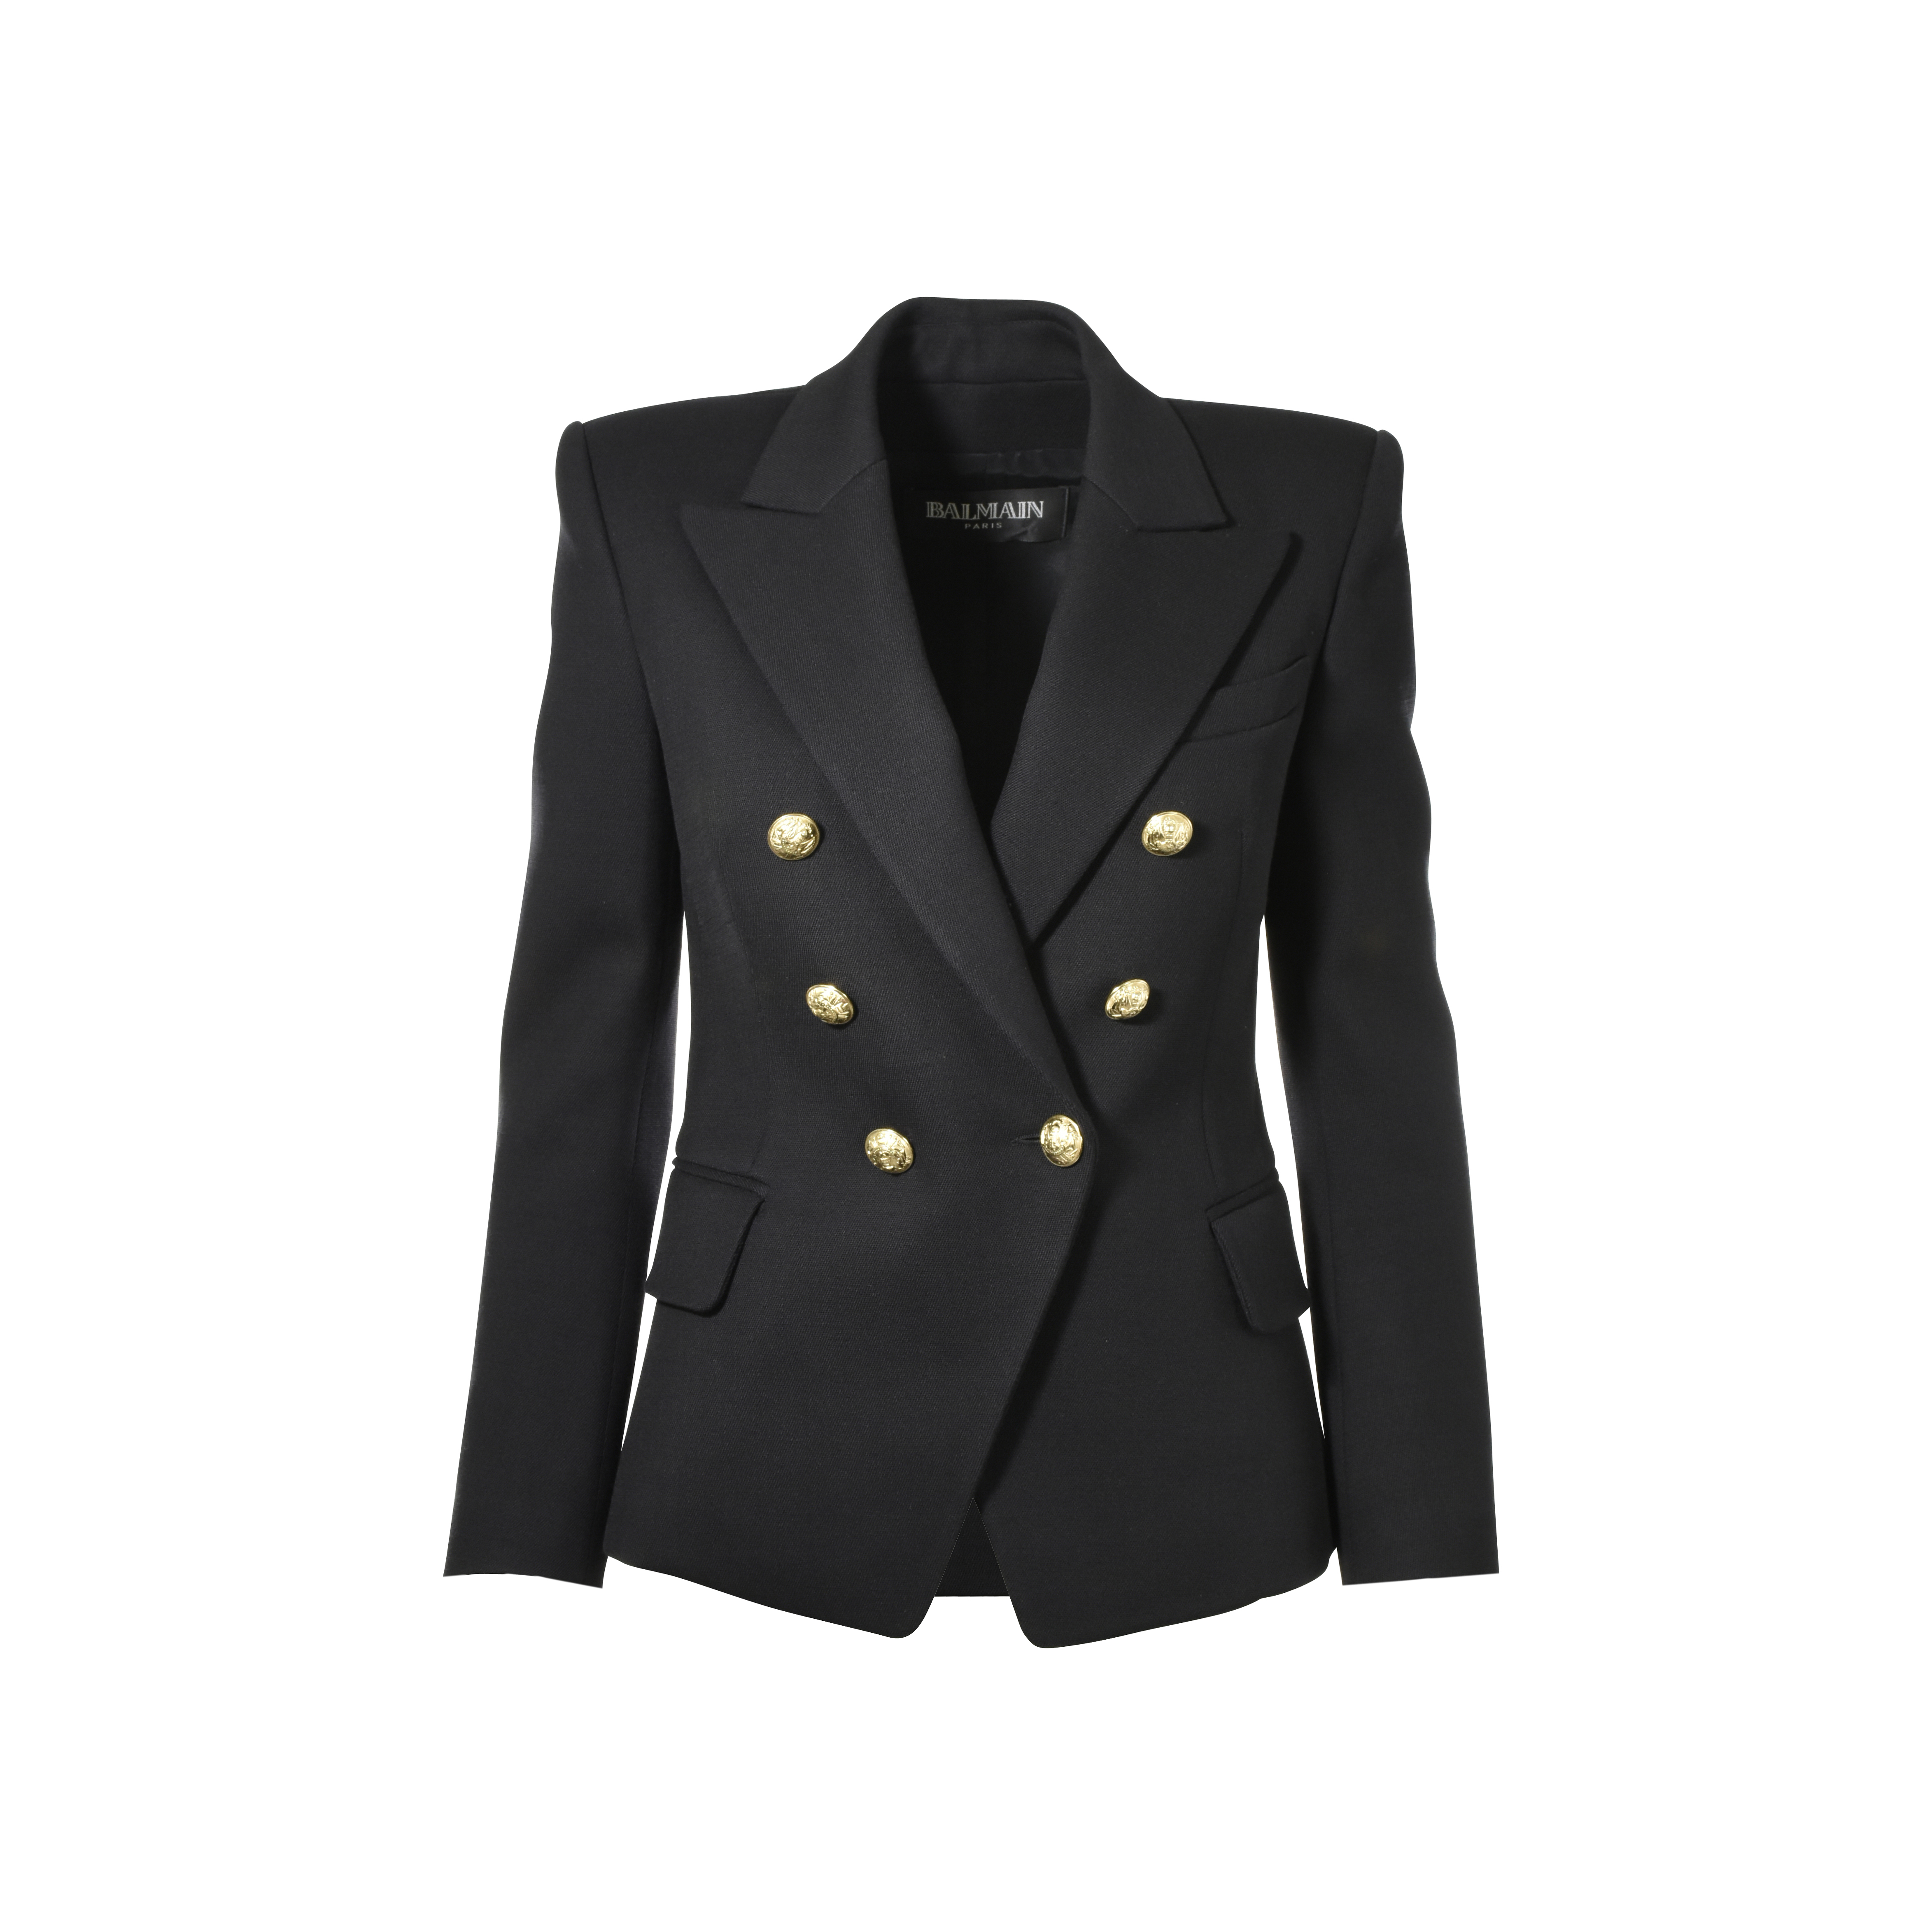 66f7d9800c1 Authentic Second Hand Balmain Double-Breasted Wool Blazer (PSS-051-00202)